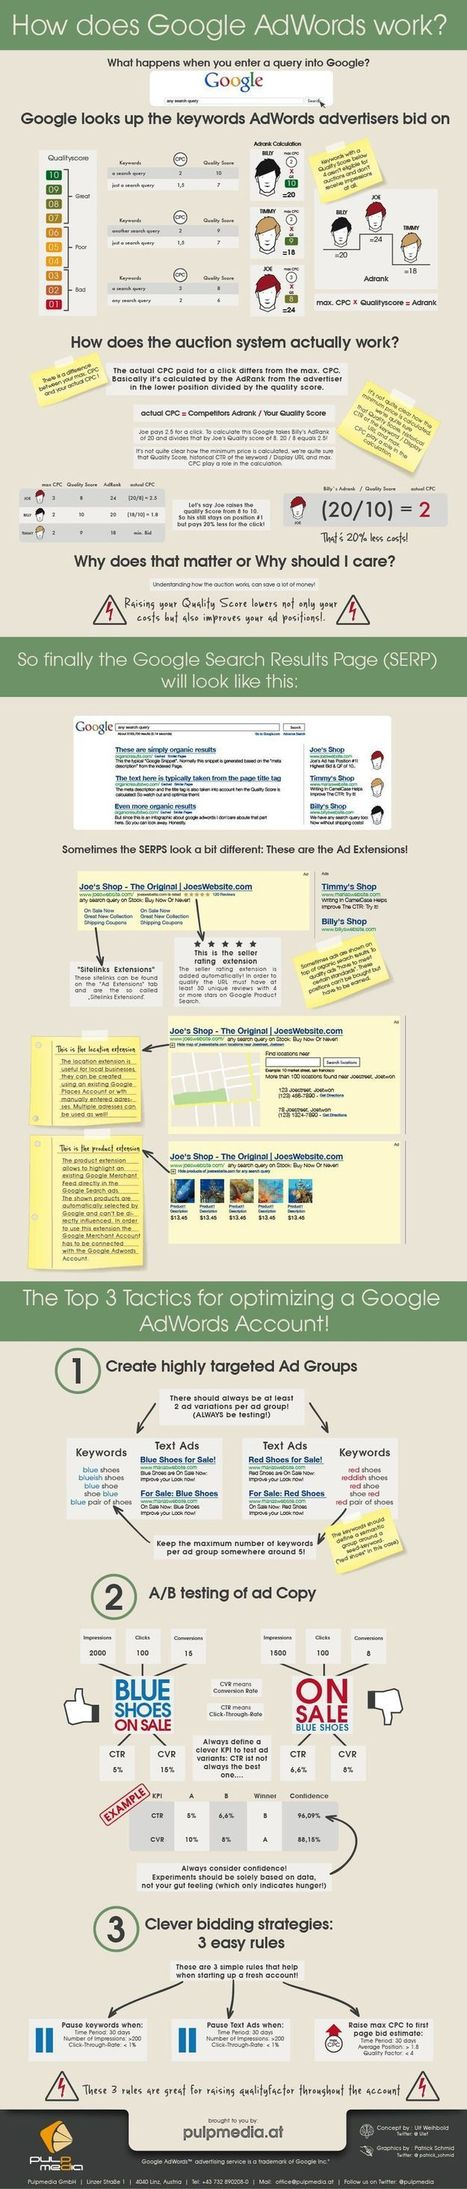 How does Google Adwords works? Infographic | Meetings, Tourism and  Technology | Scoop.it